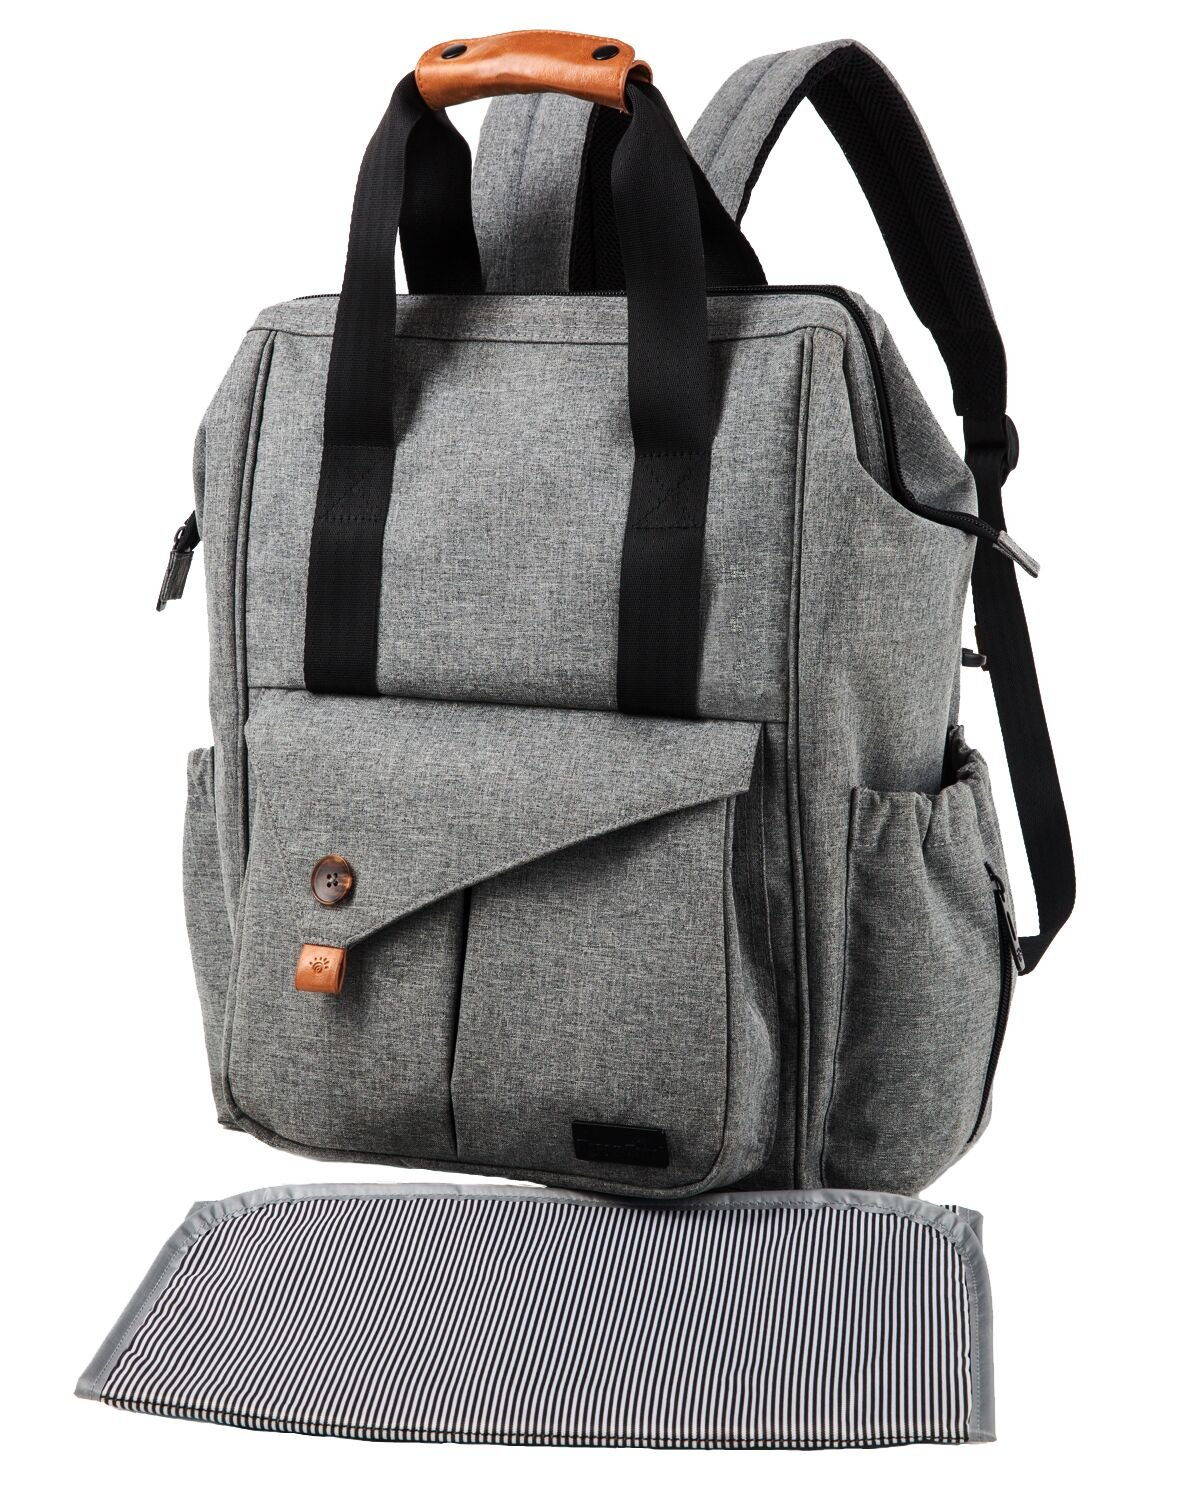 Diaper Bag Backpack with Changing Pad/Insulated Bottle Pockets/Water Resistance (grey-5279) by Hap Tim